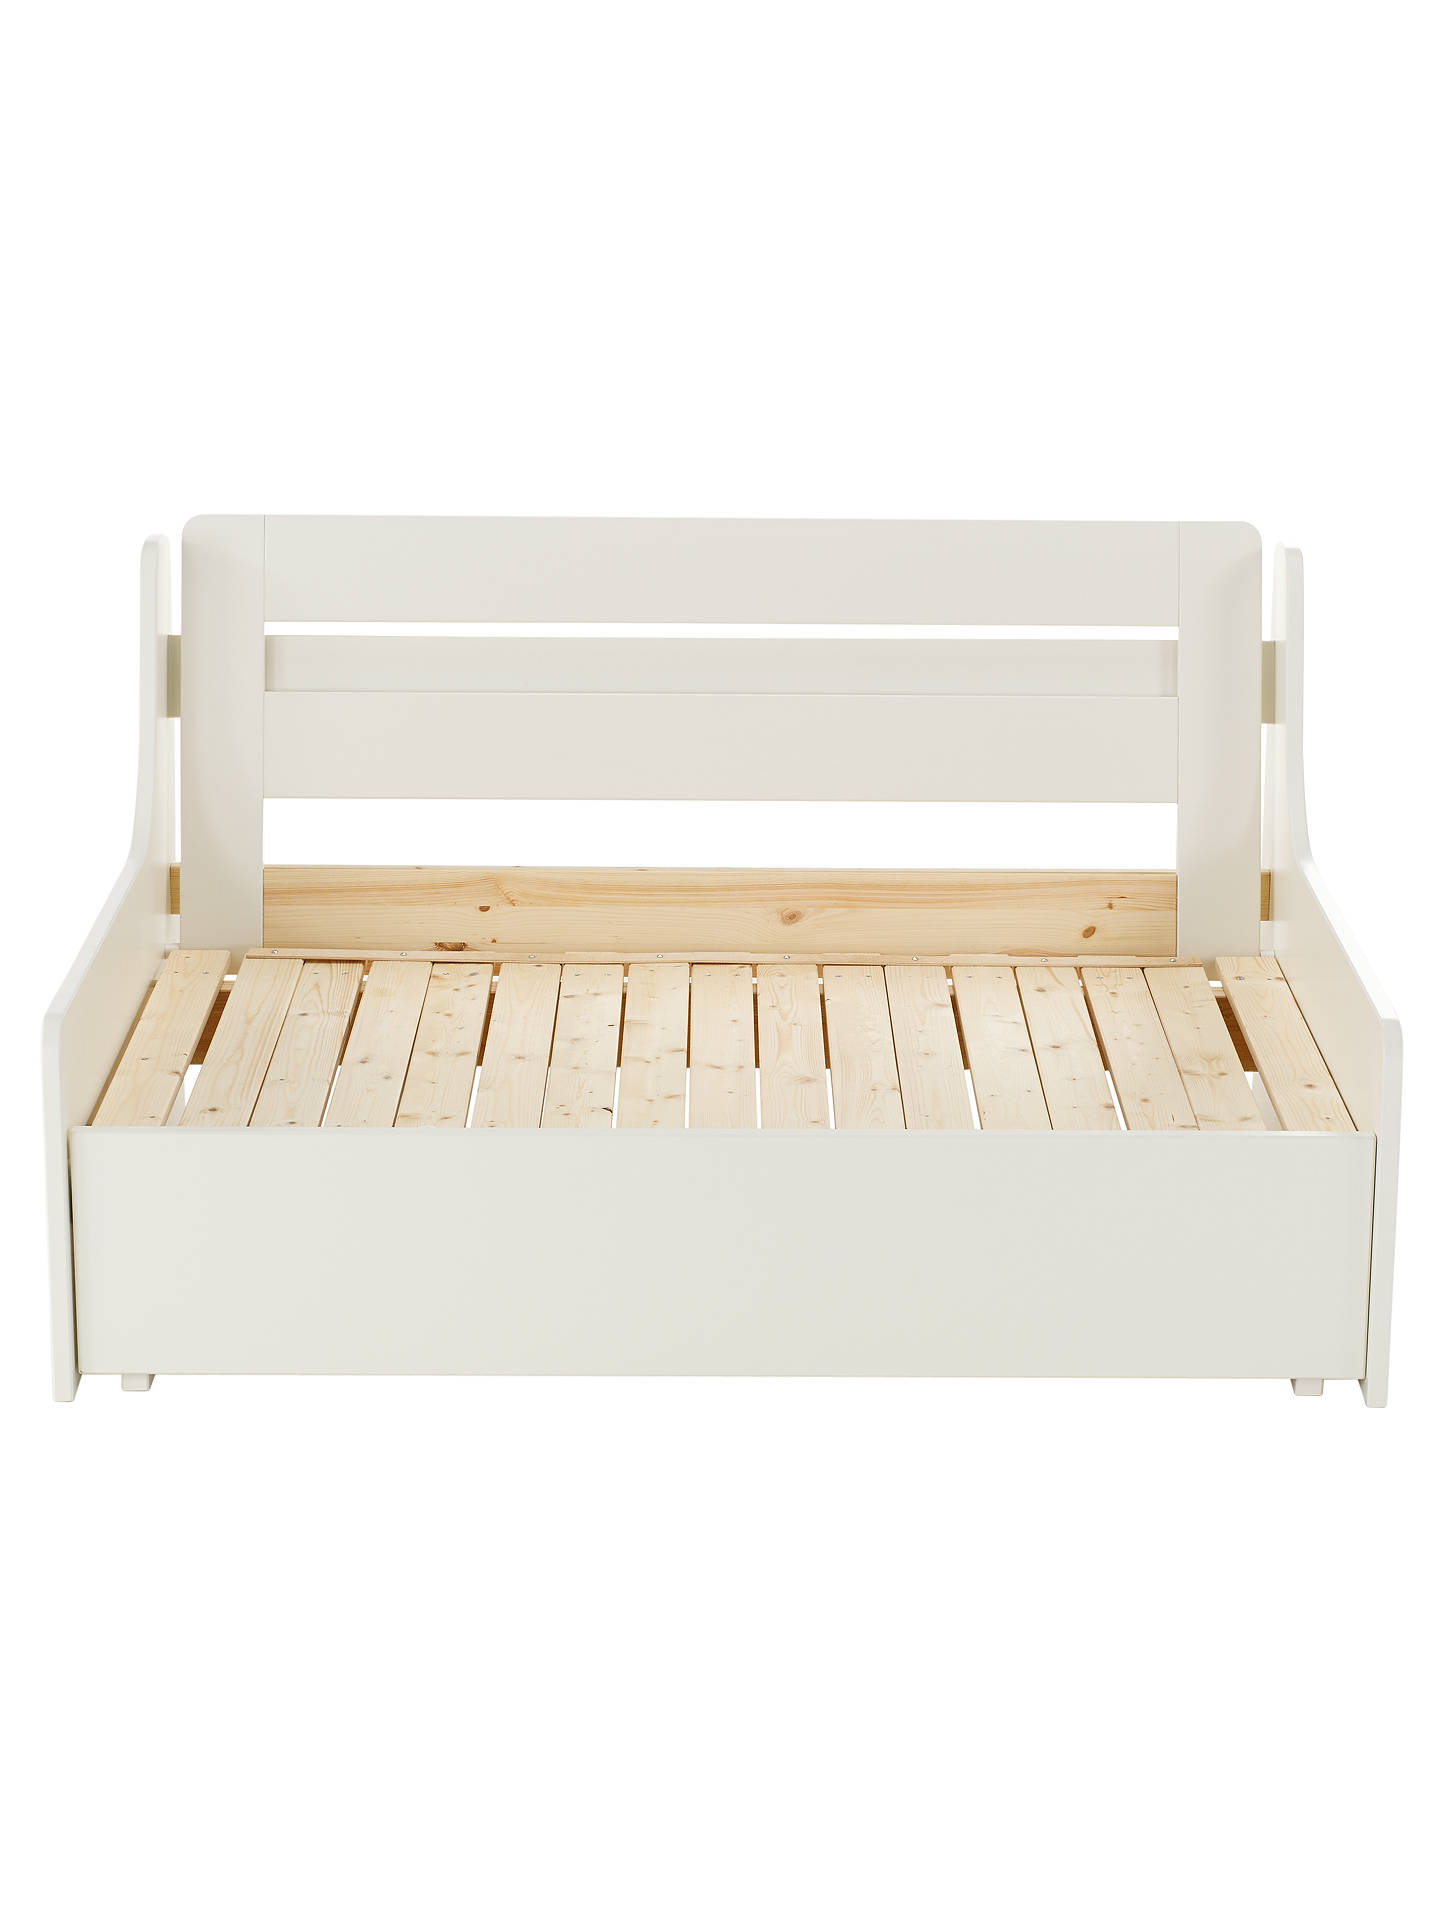 Fantastic Stompa Uno S Plus Double Chair Bed At John Lewis Partners Theyellowbook Wood Chair Design Ideas Theyellowbookinfo